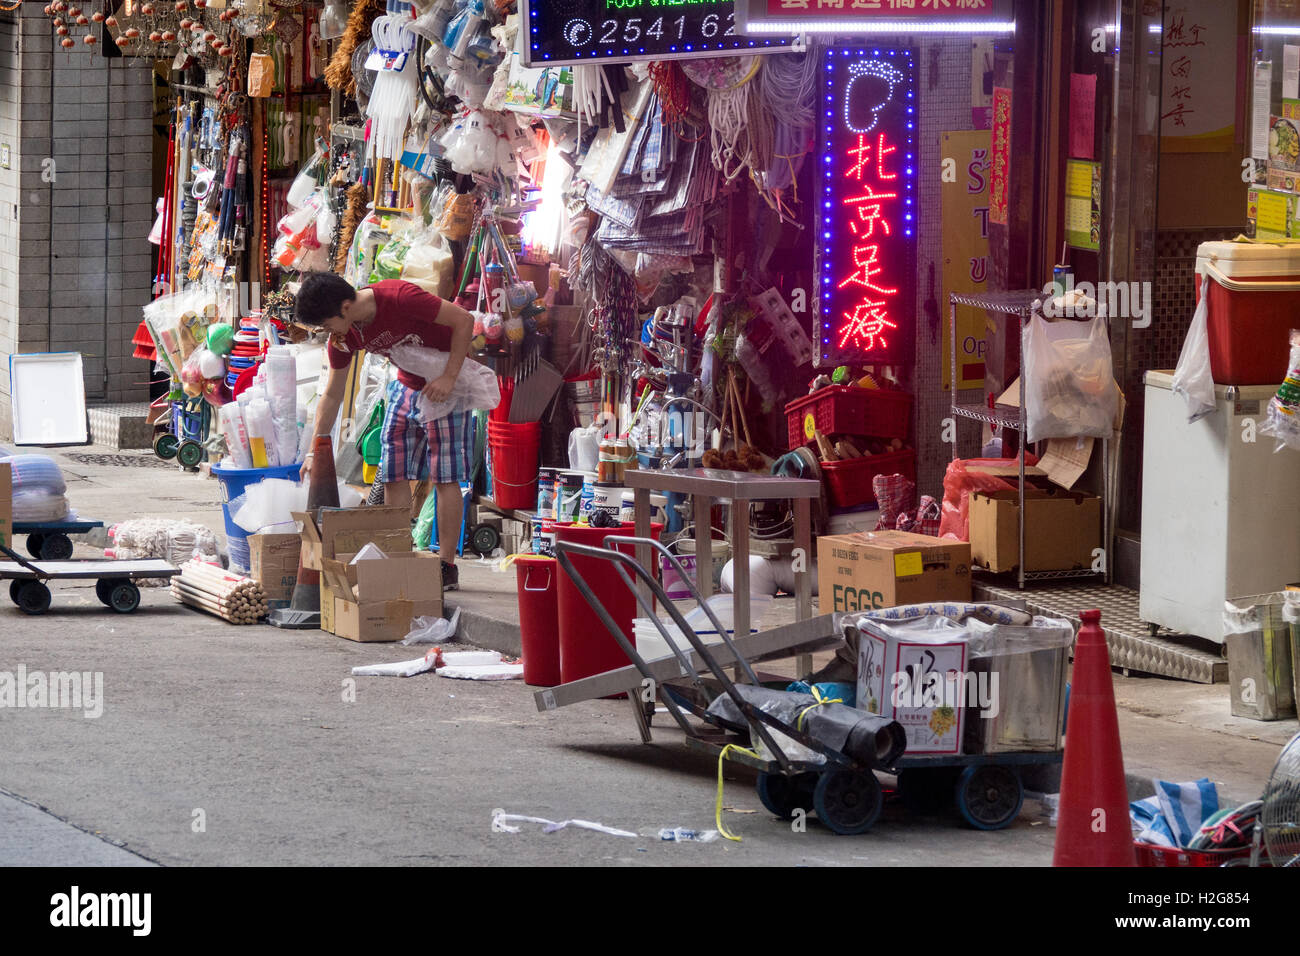 a woman unpacks products for her shop in Hong Kong - Stock Image